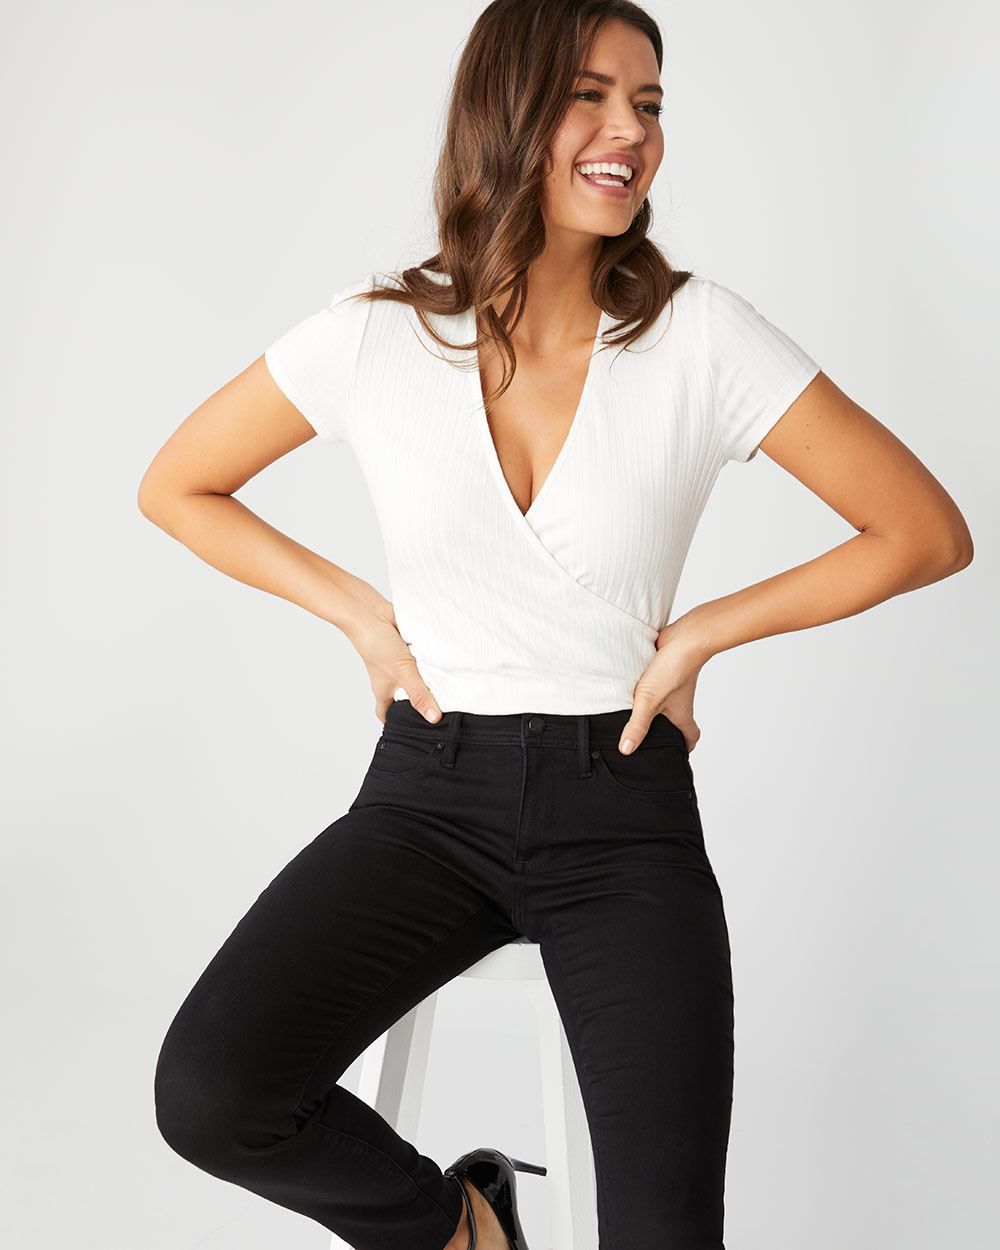 Natalie Mid-rise pant in black - 32''